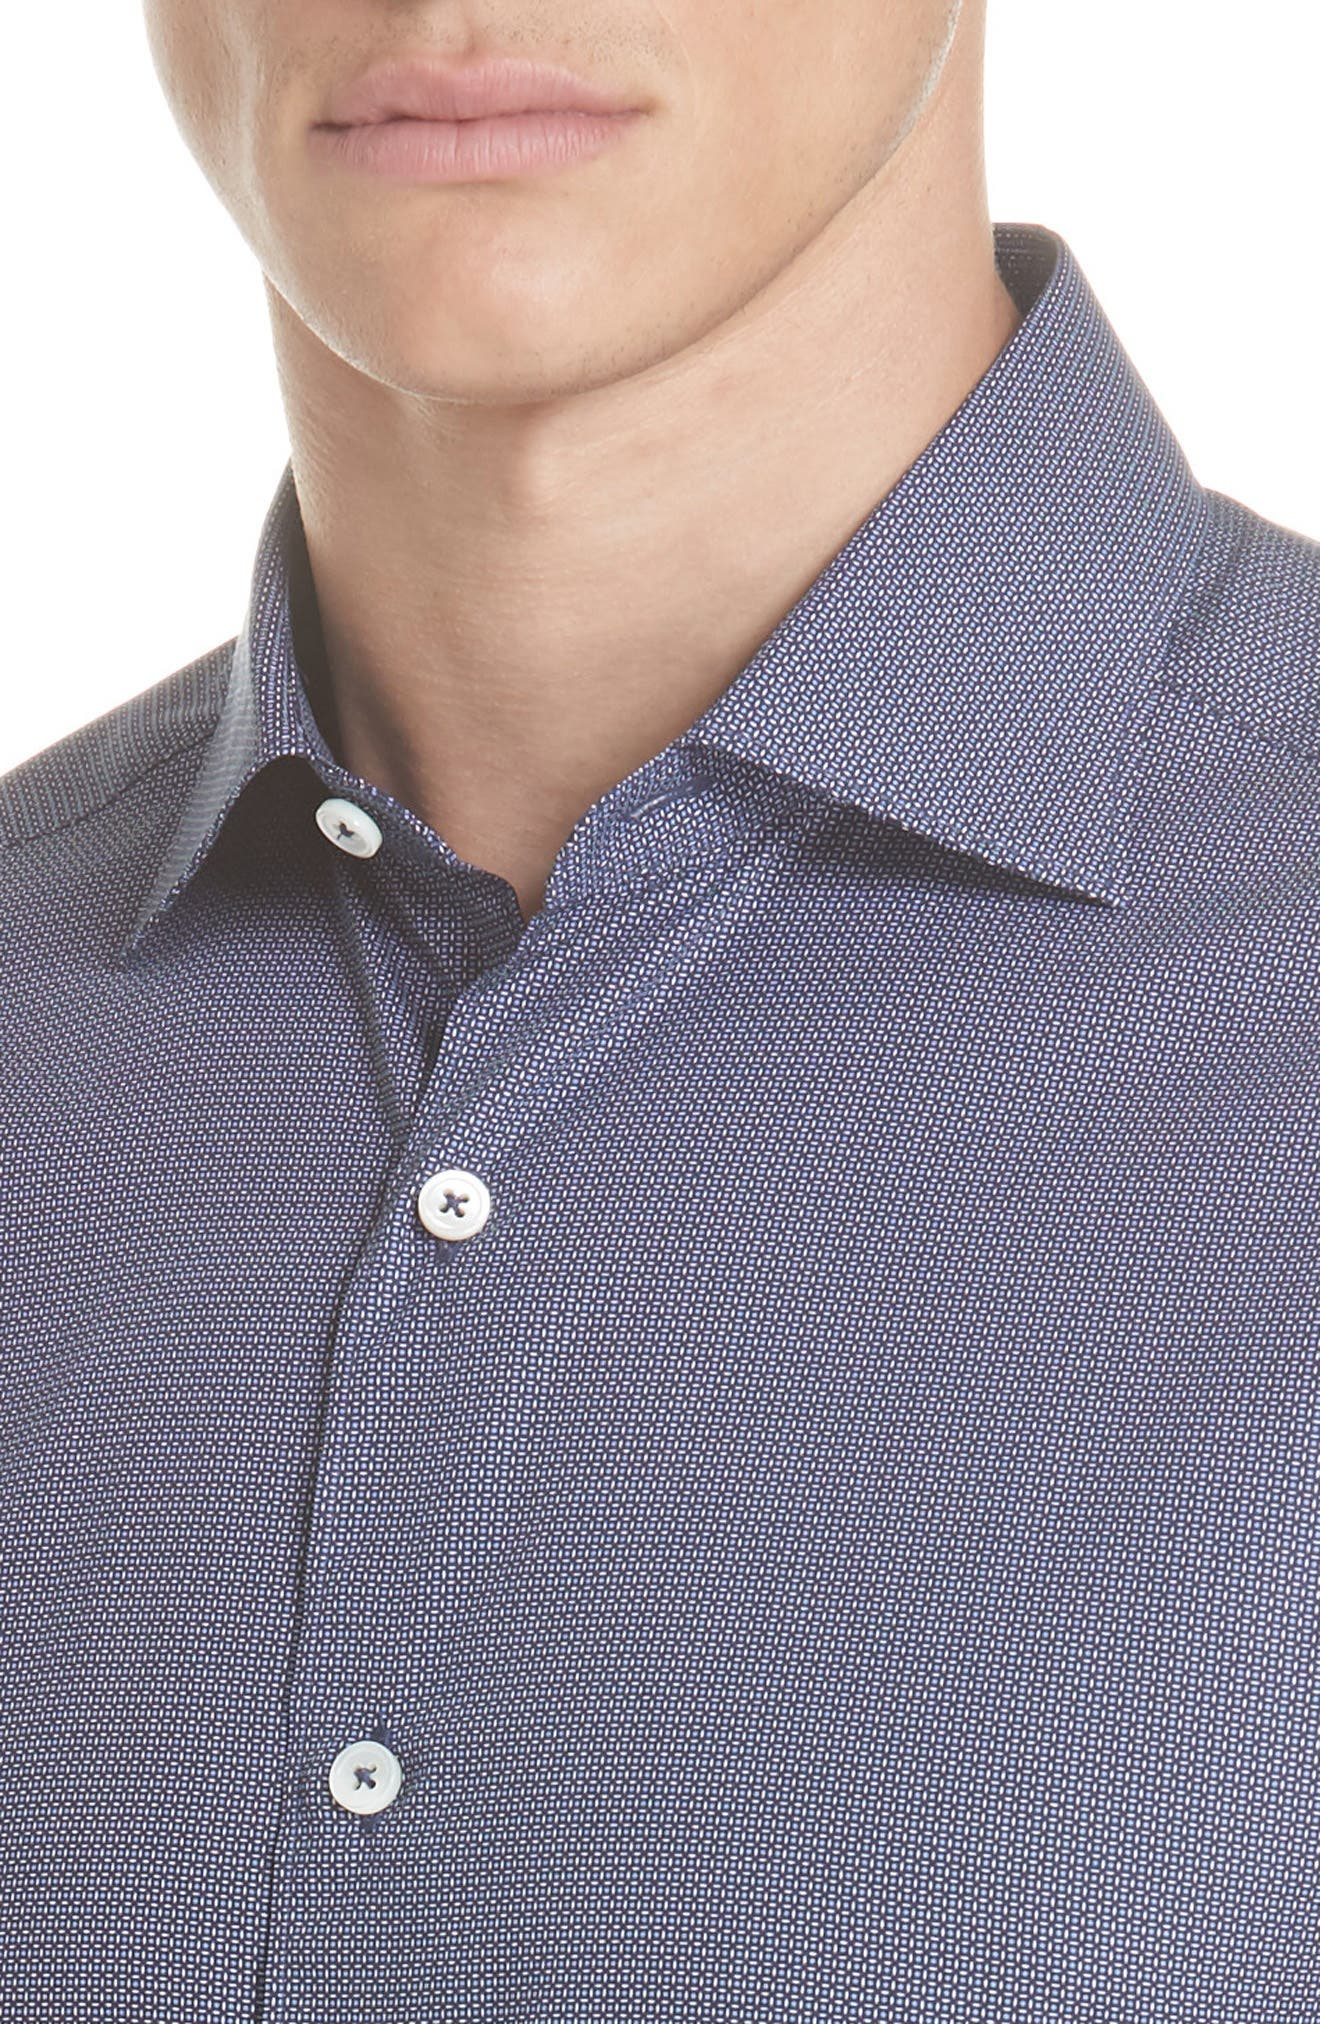 Classic Fit Check Sport Shirt,                             Alternate thumbnail 2, color,                             NAVY